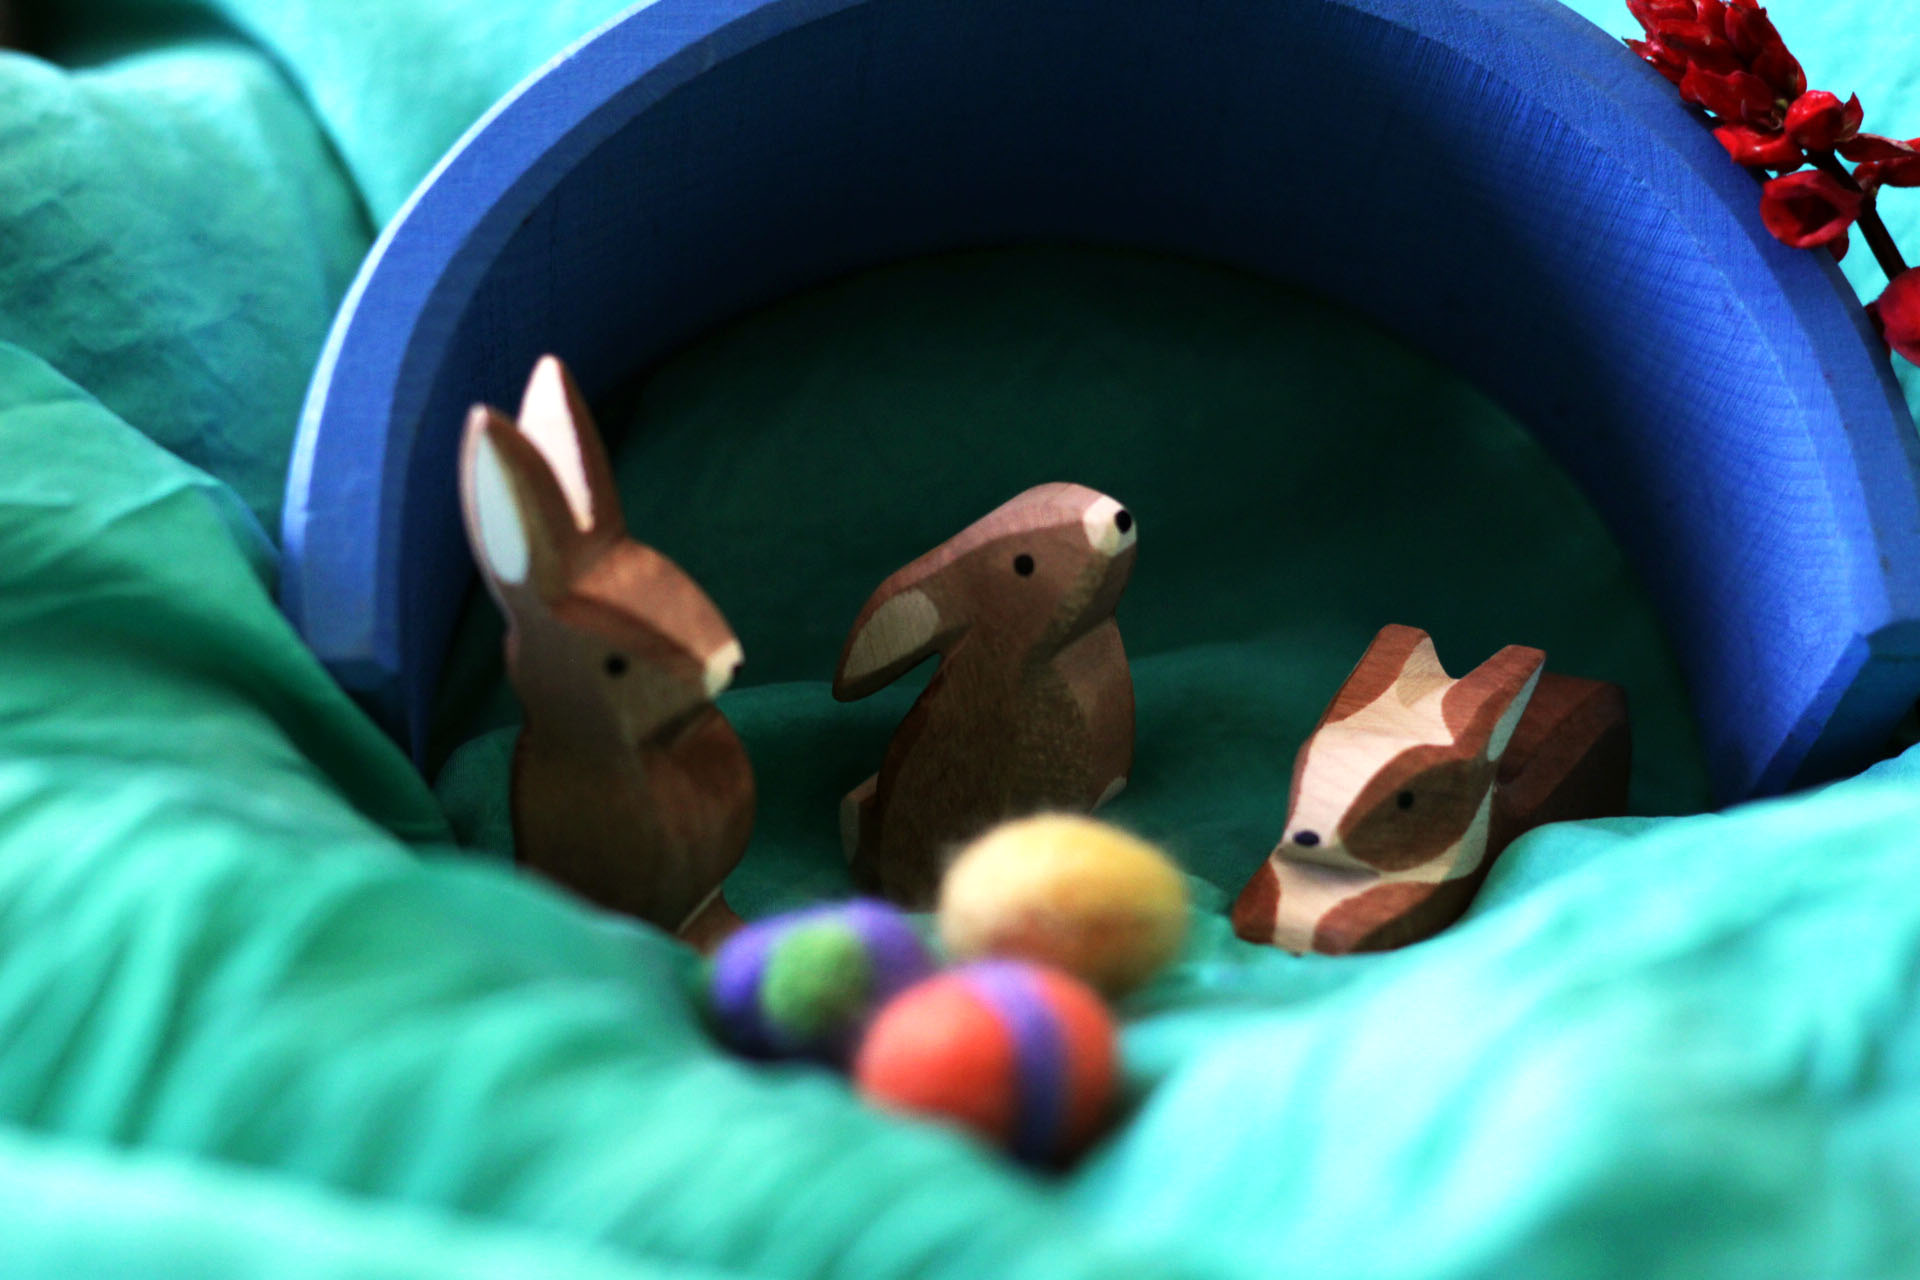 easter rabbits with their eggs